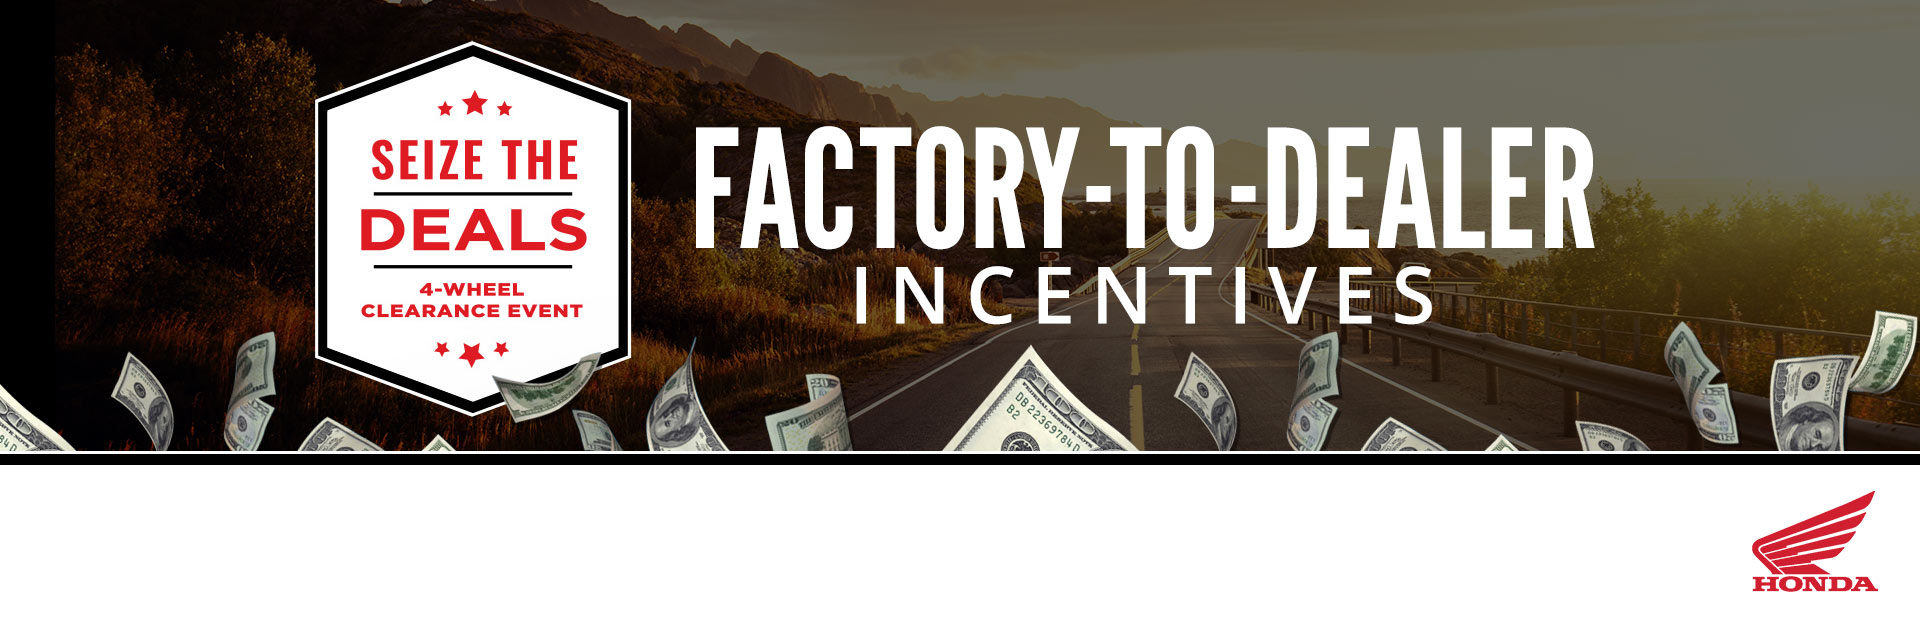 Honda: Factory-To-Dealer Incentives